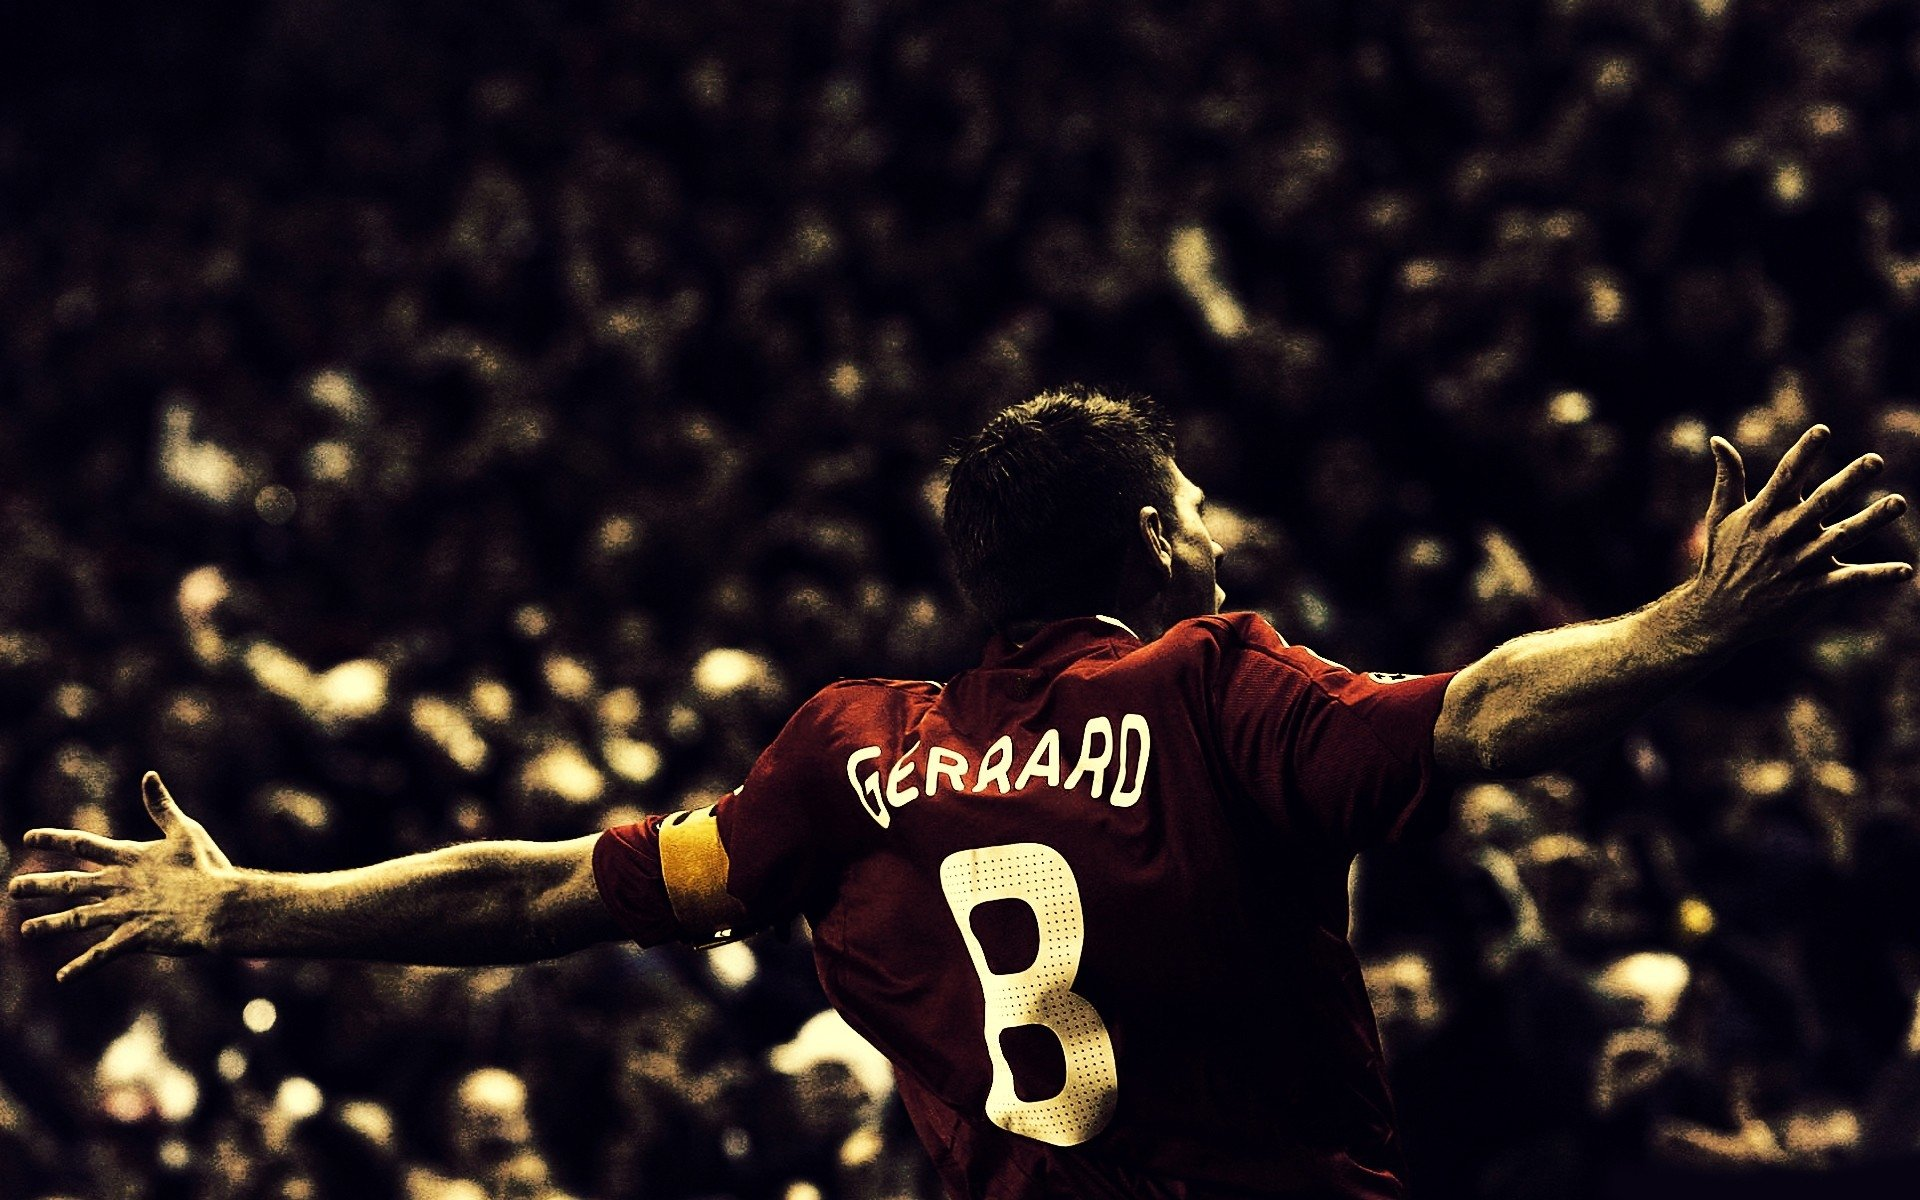 Sports - Steven Gerrard  Soccer Wallpaper